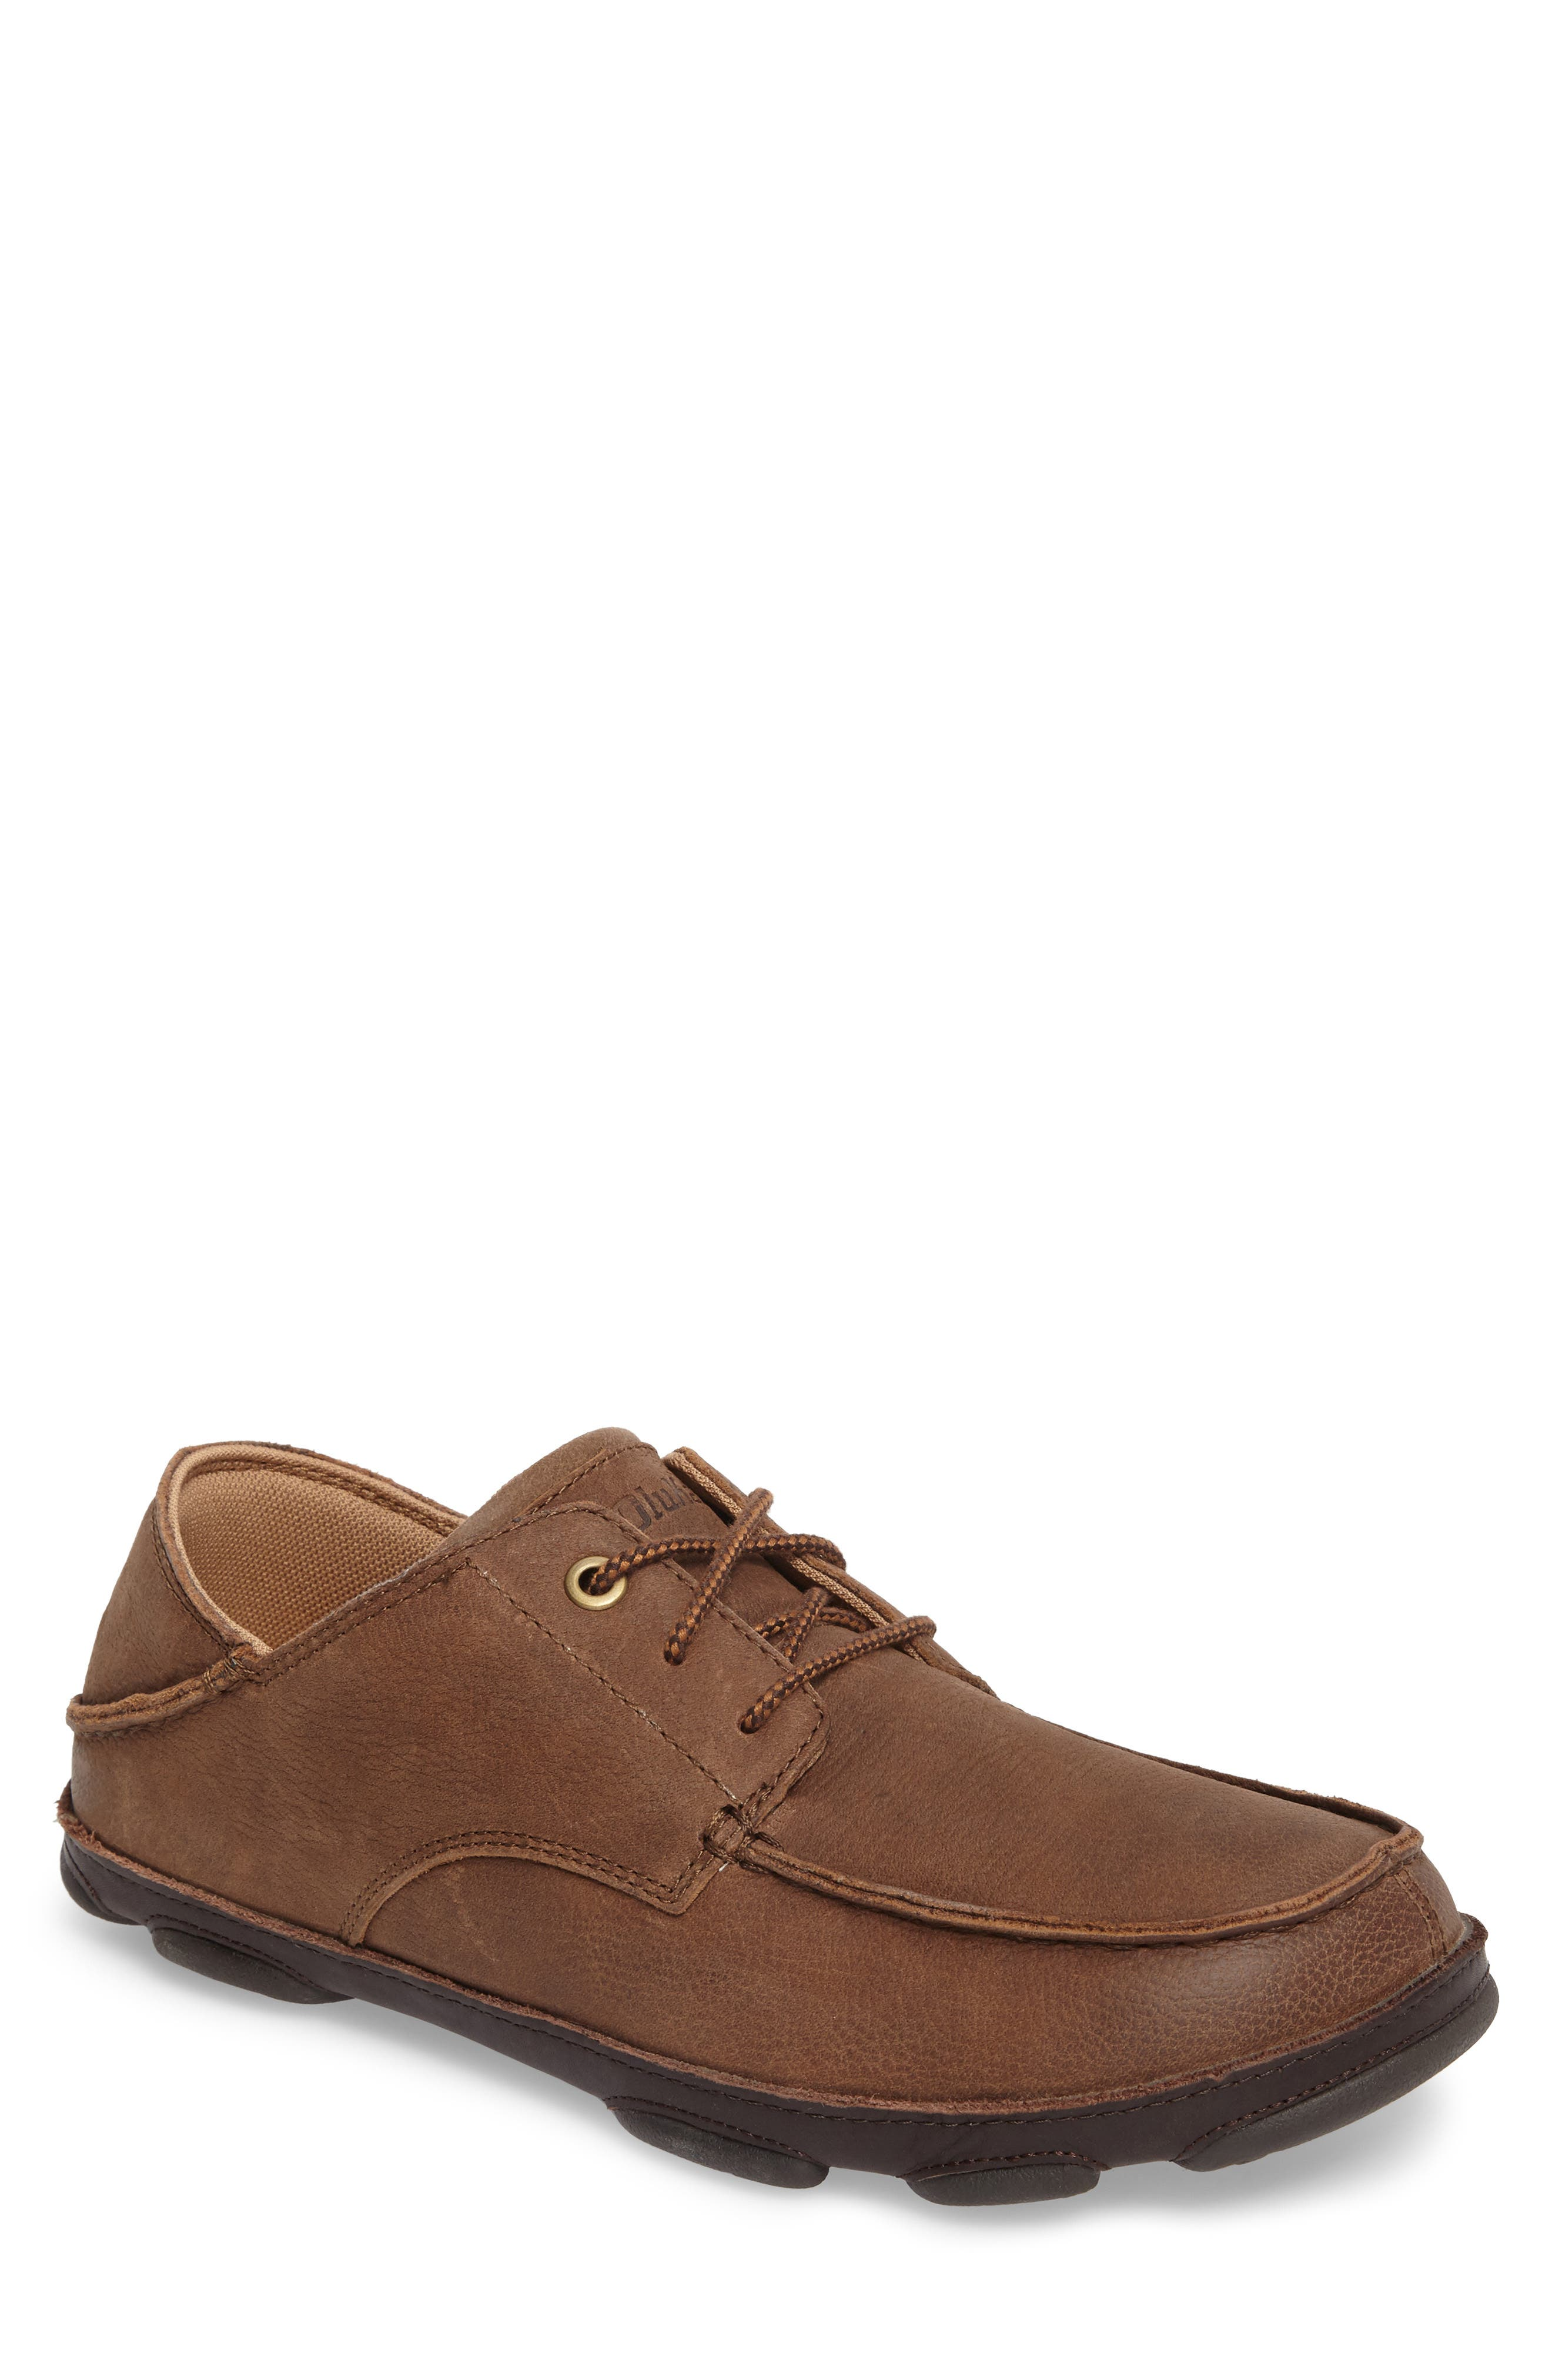 Hamakua Poko Moc Toe Derby,                         Main,                         color, Ray/ Dark Wood Leather